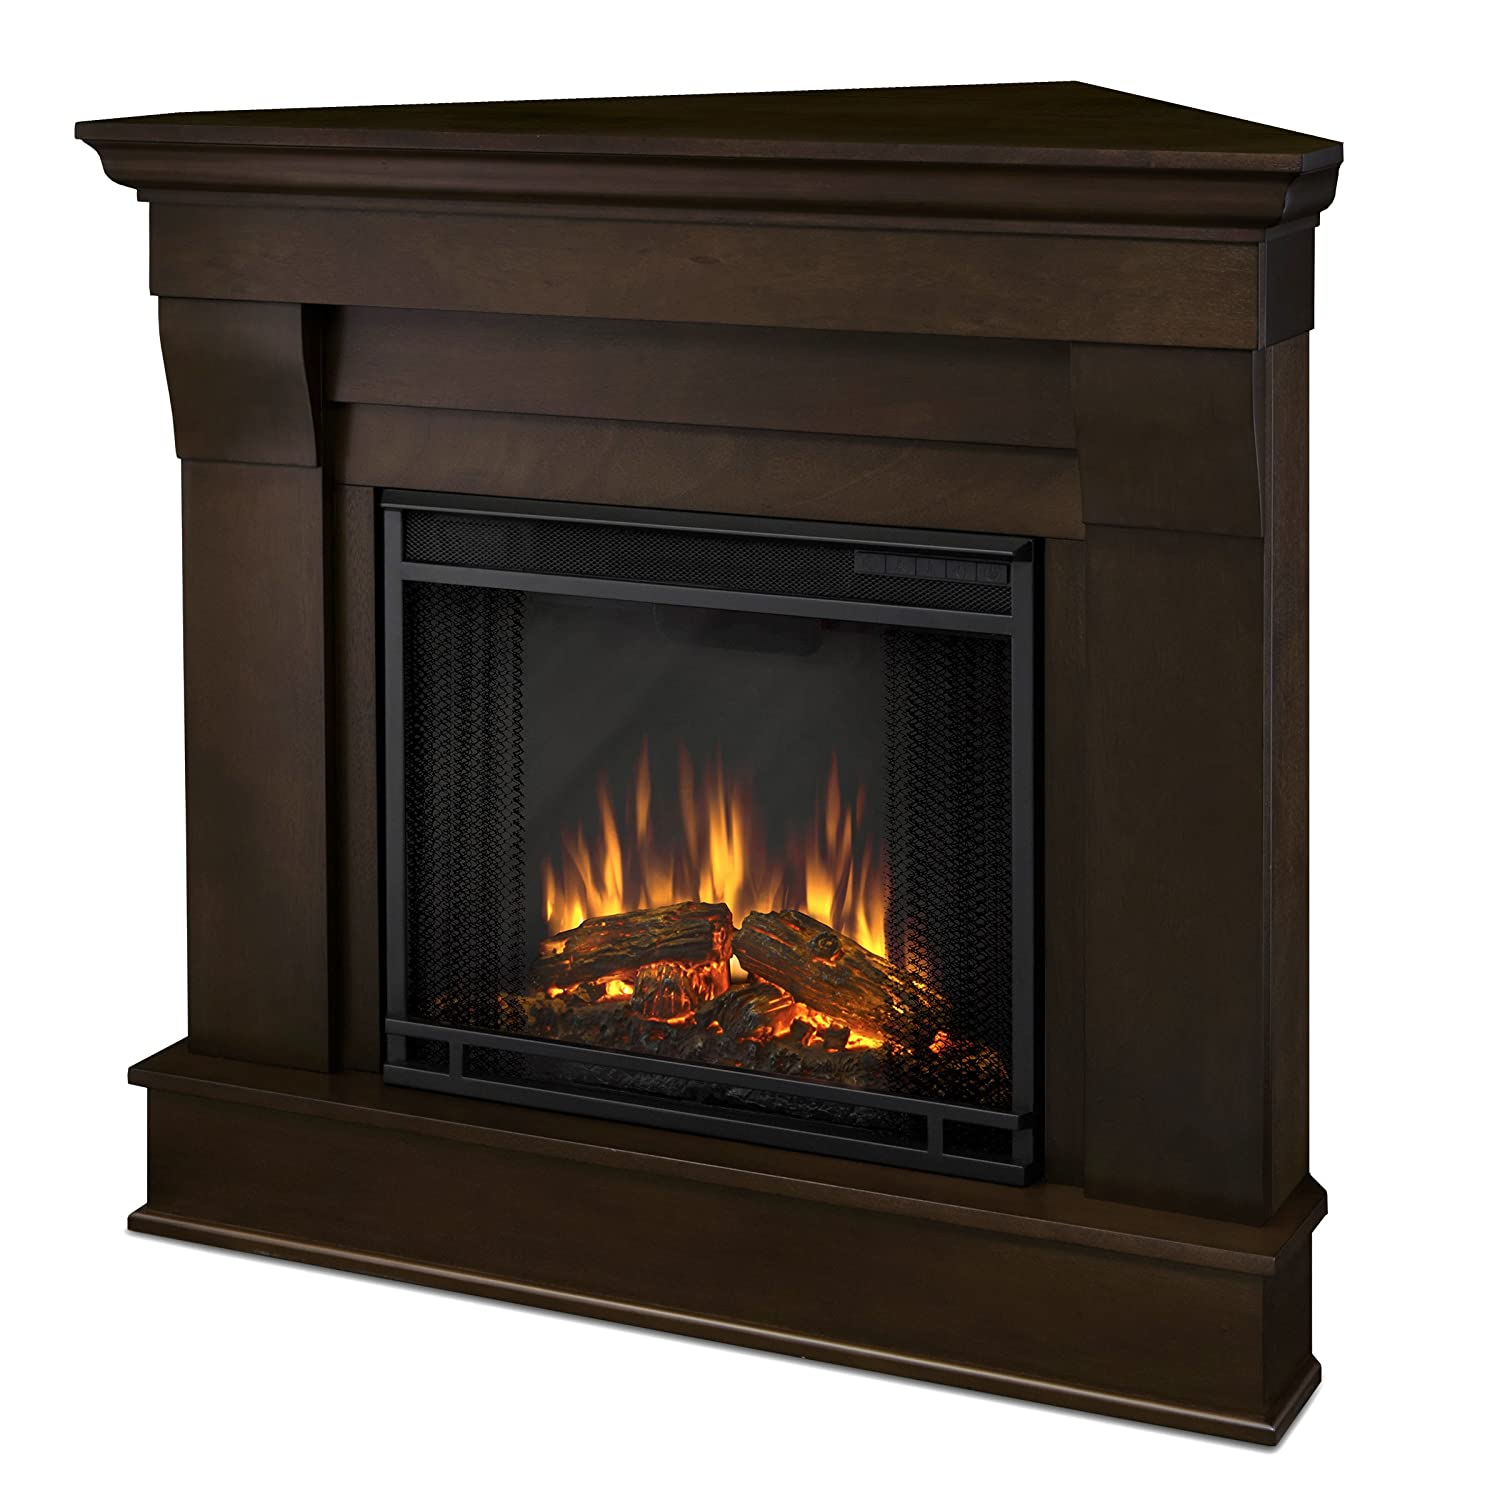 Amazon com real flame 5950e chateau corner electric fireplace small dark walnut home kitchen